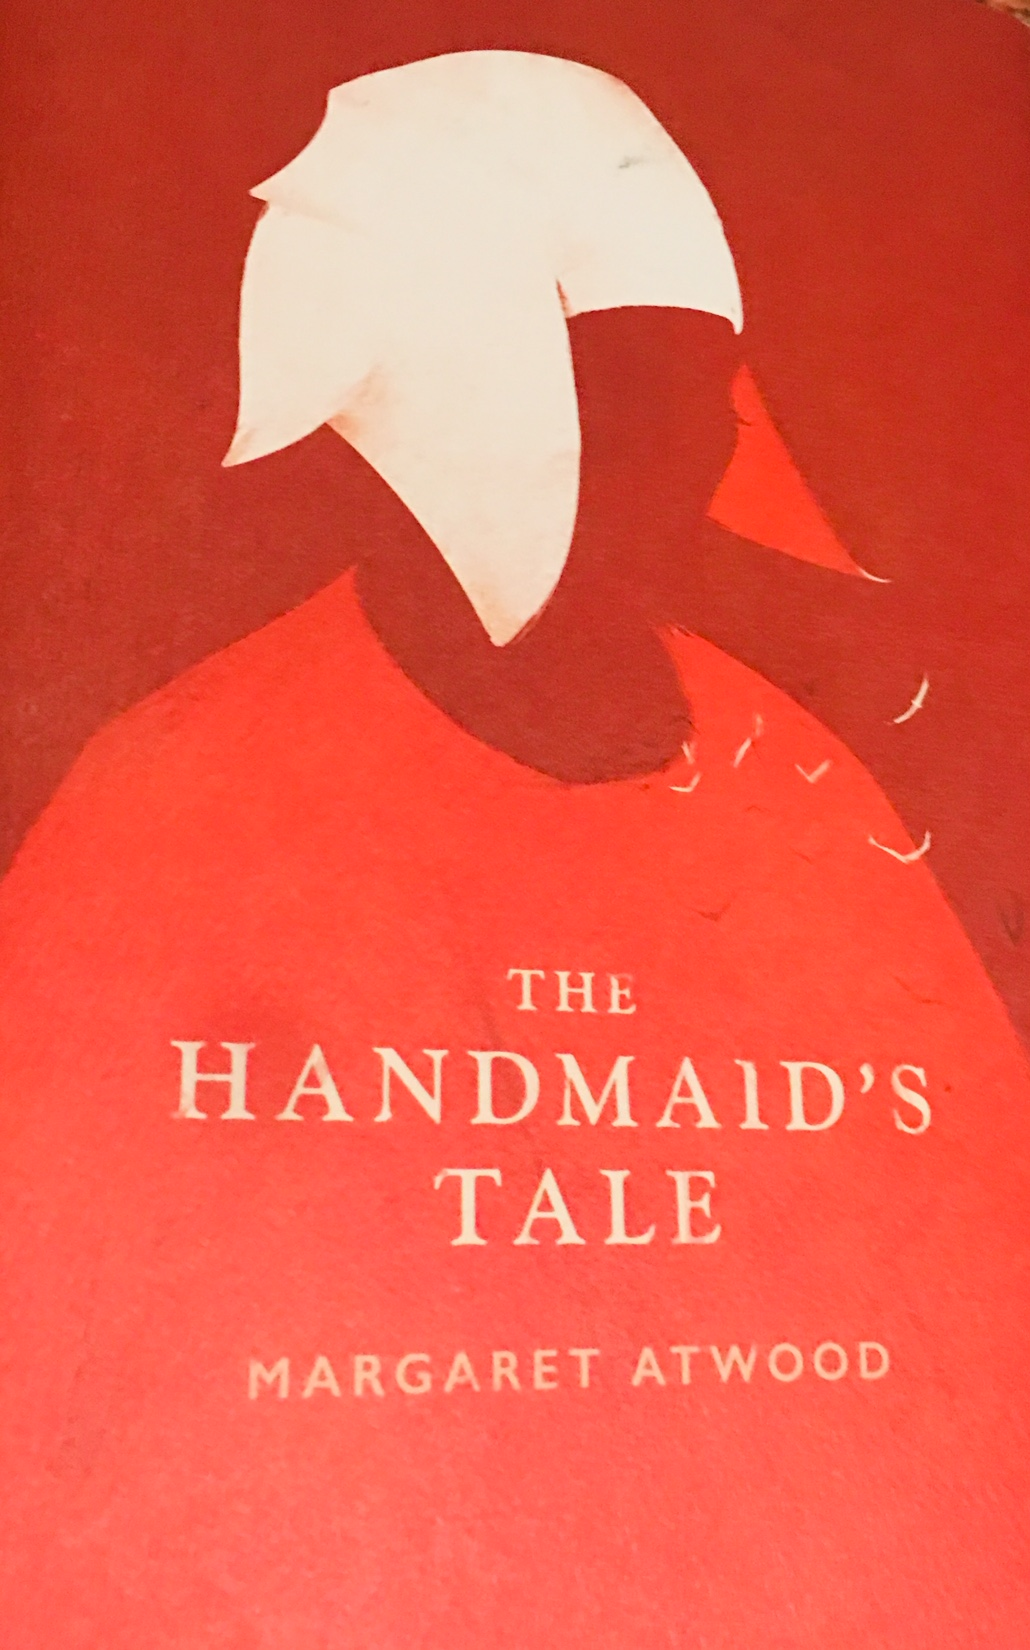 A Handmaid's Tale Margaret Atwood